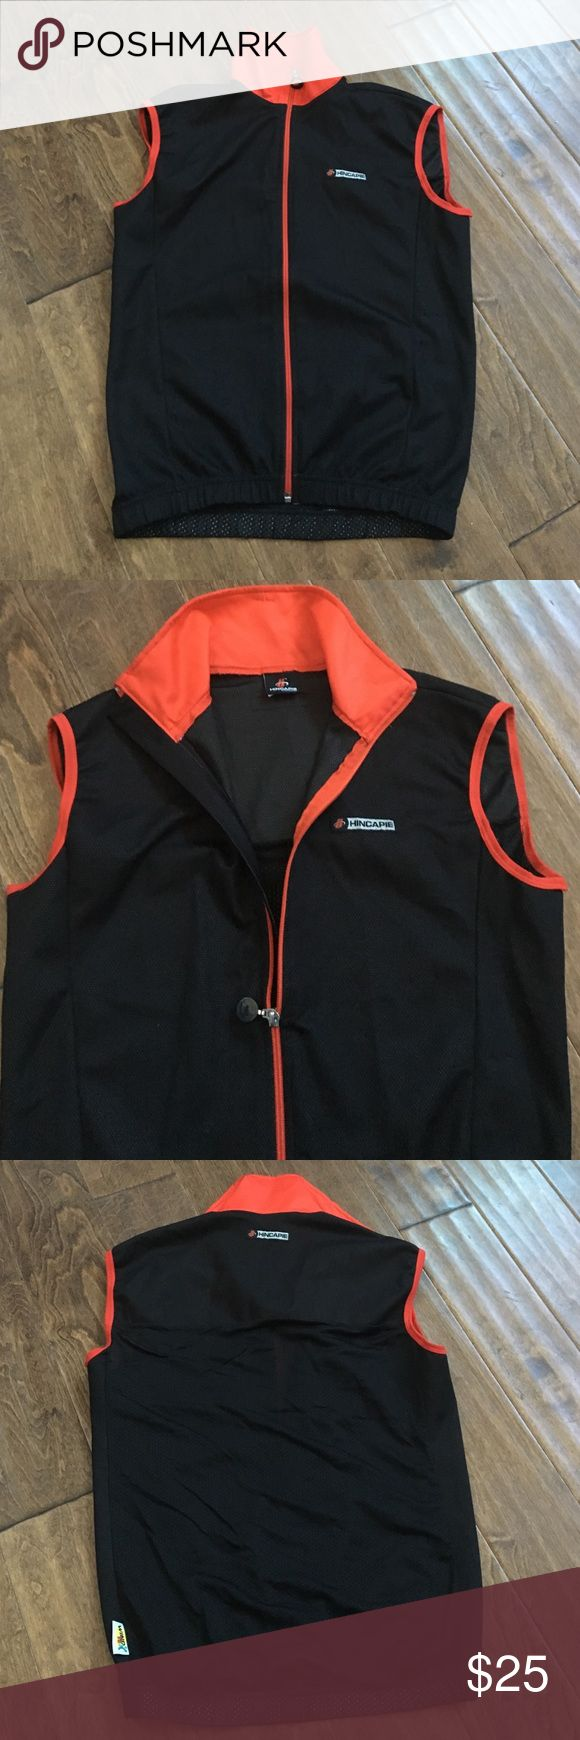 Men's cycling vest M Men's cycling vest. Size M Hincapie made in Italy. Excellent condition 👌🏻 Shirts Tees - Short Sleeve